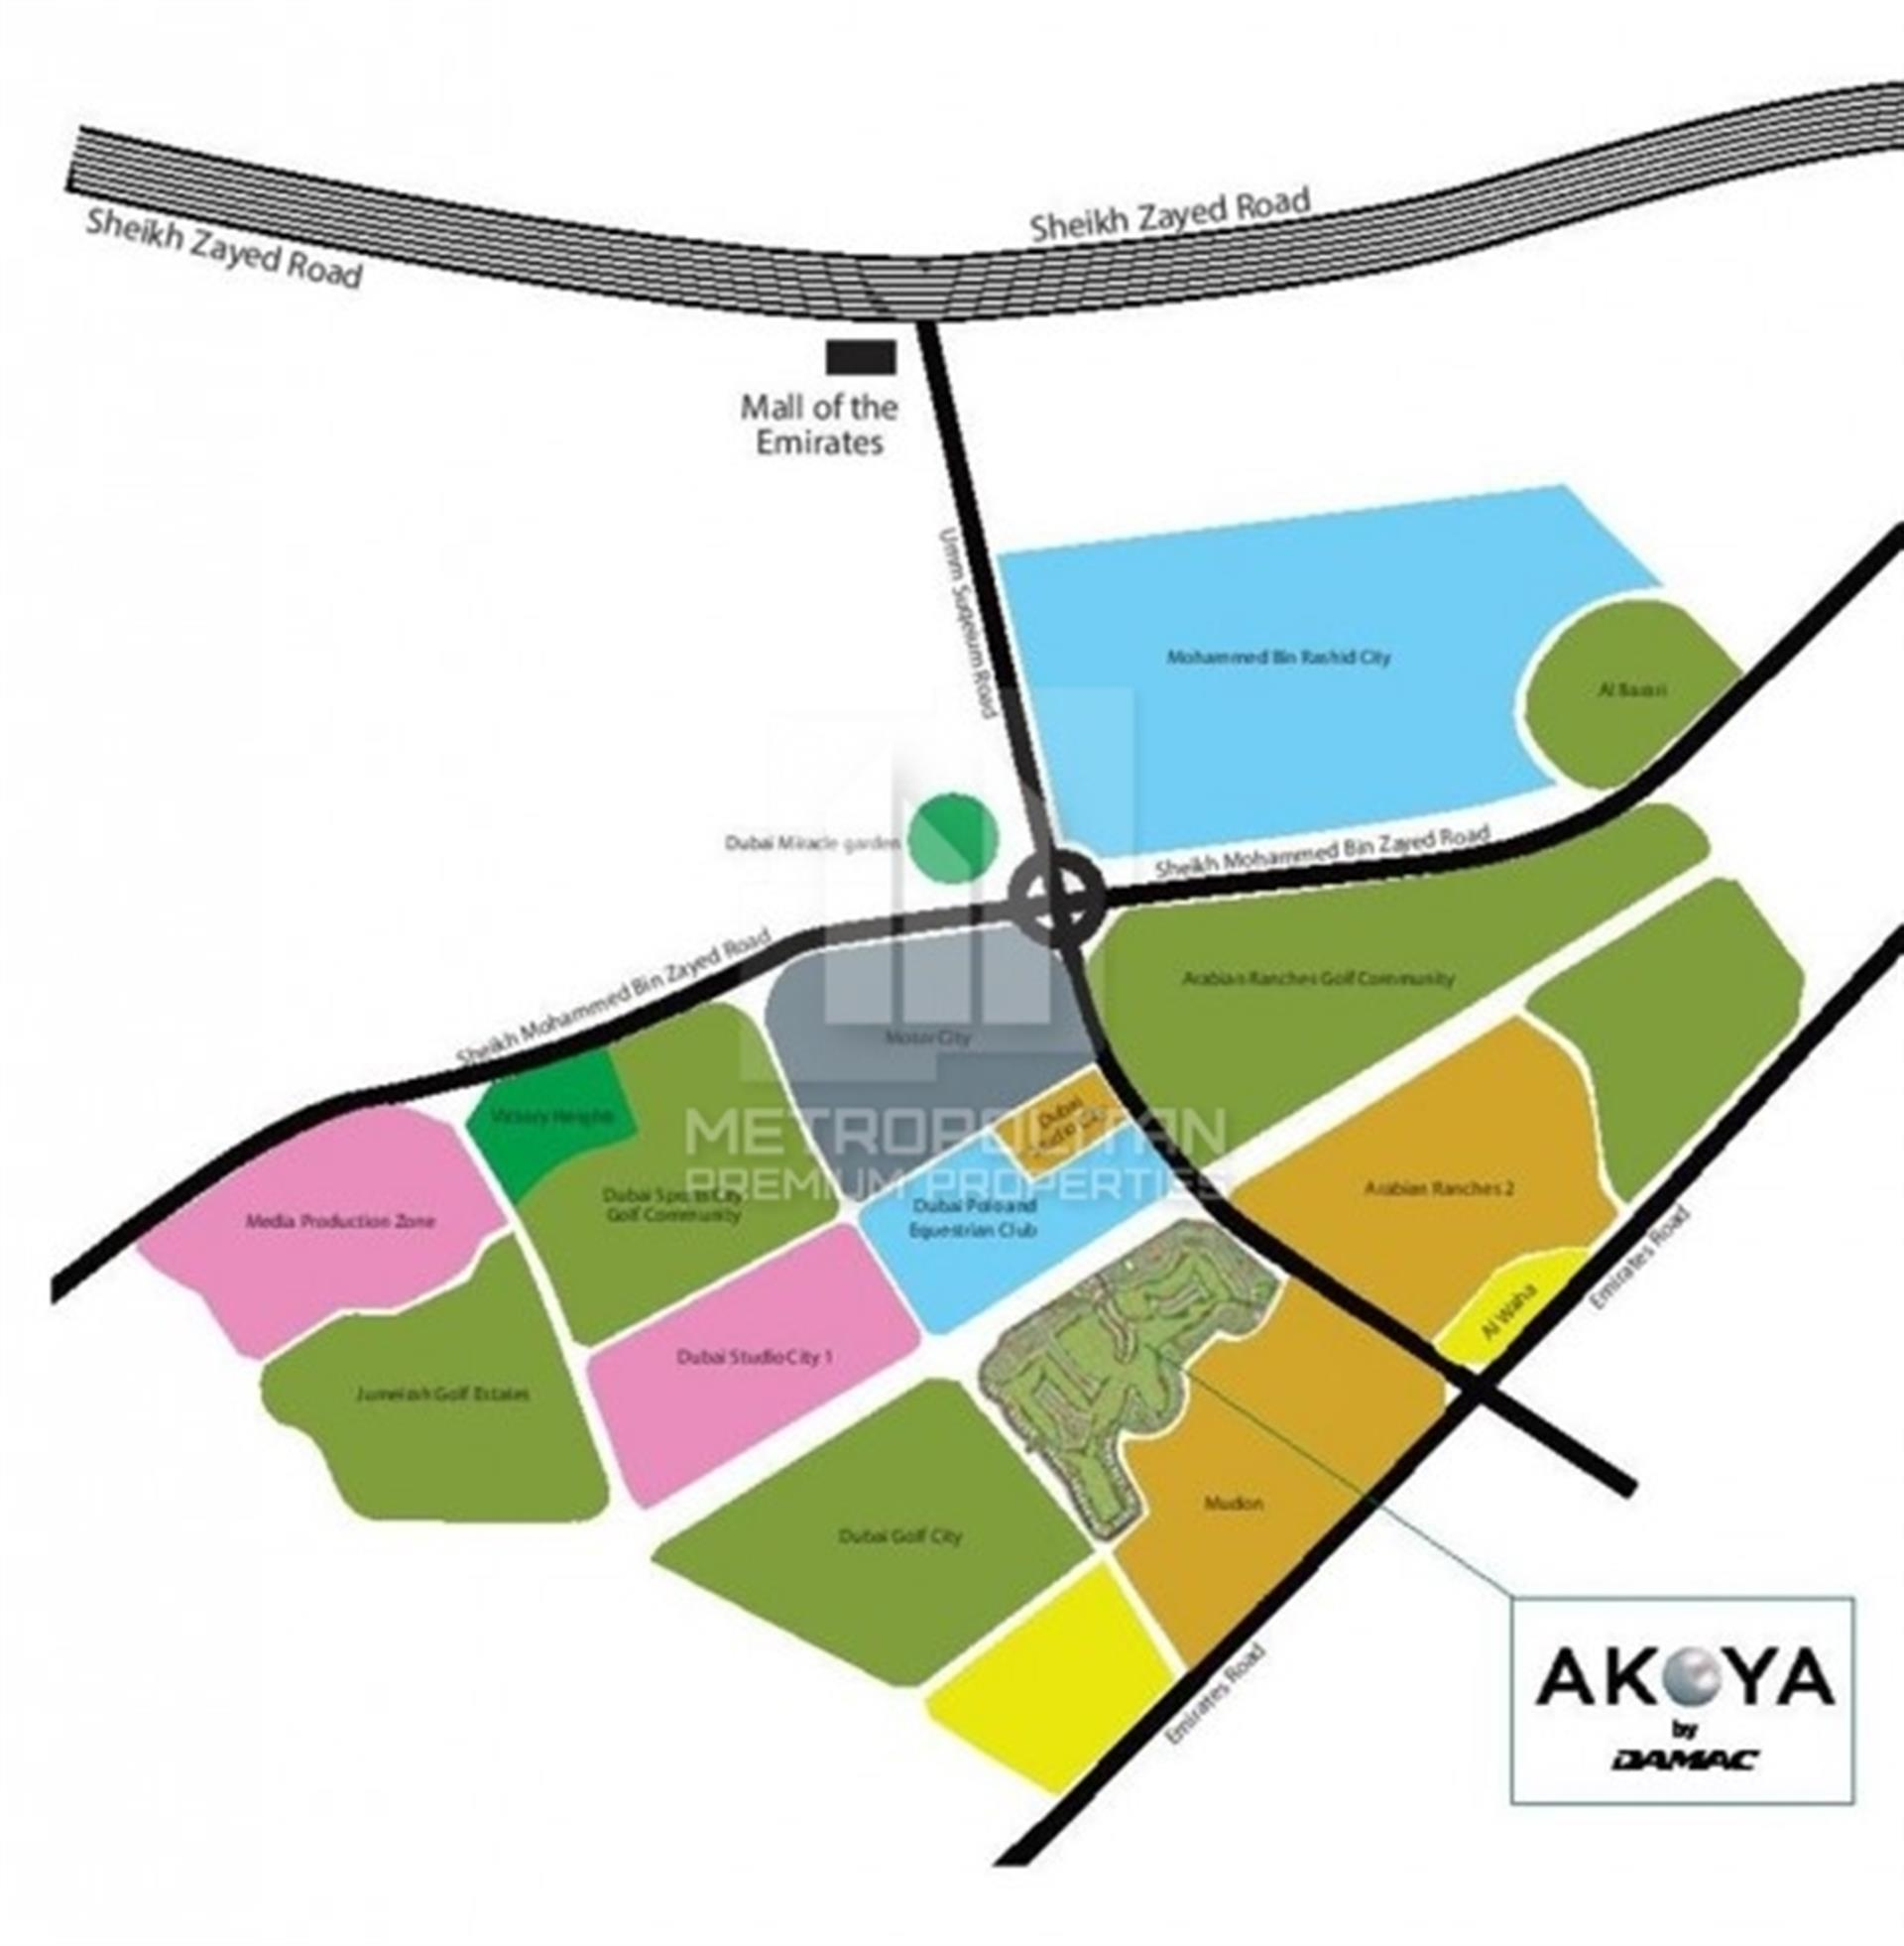 Top notch 5 BR luxury villa in Long View, Akoya Drive by Damac (Availability Confirmed 10/11/2014)